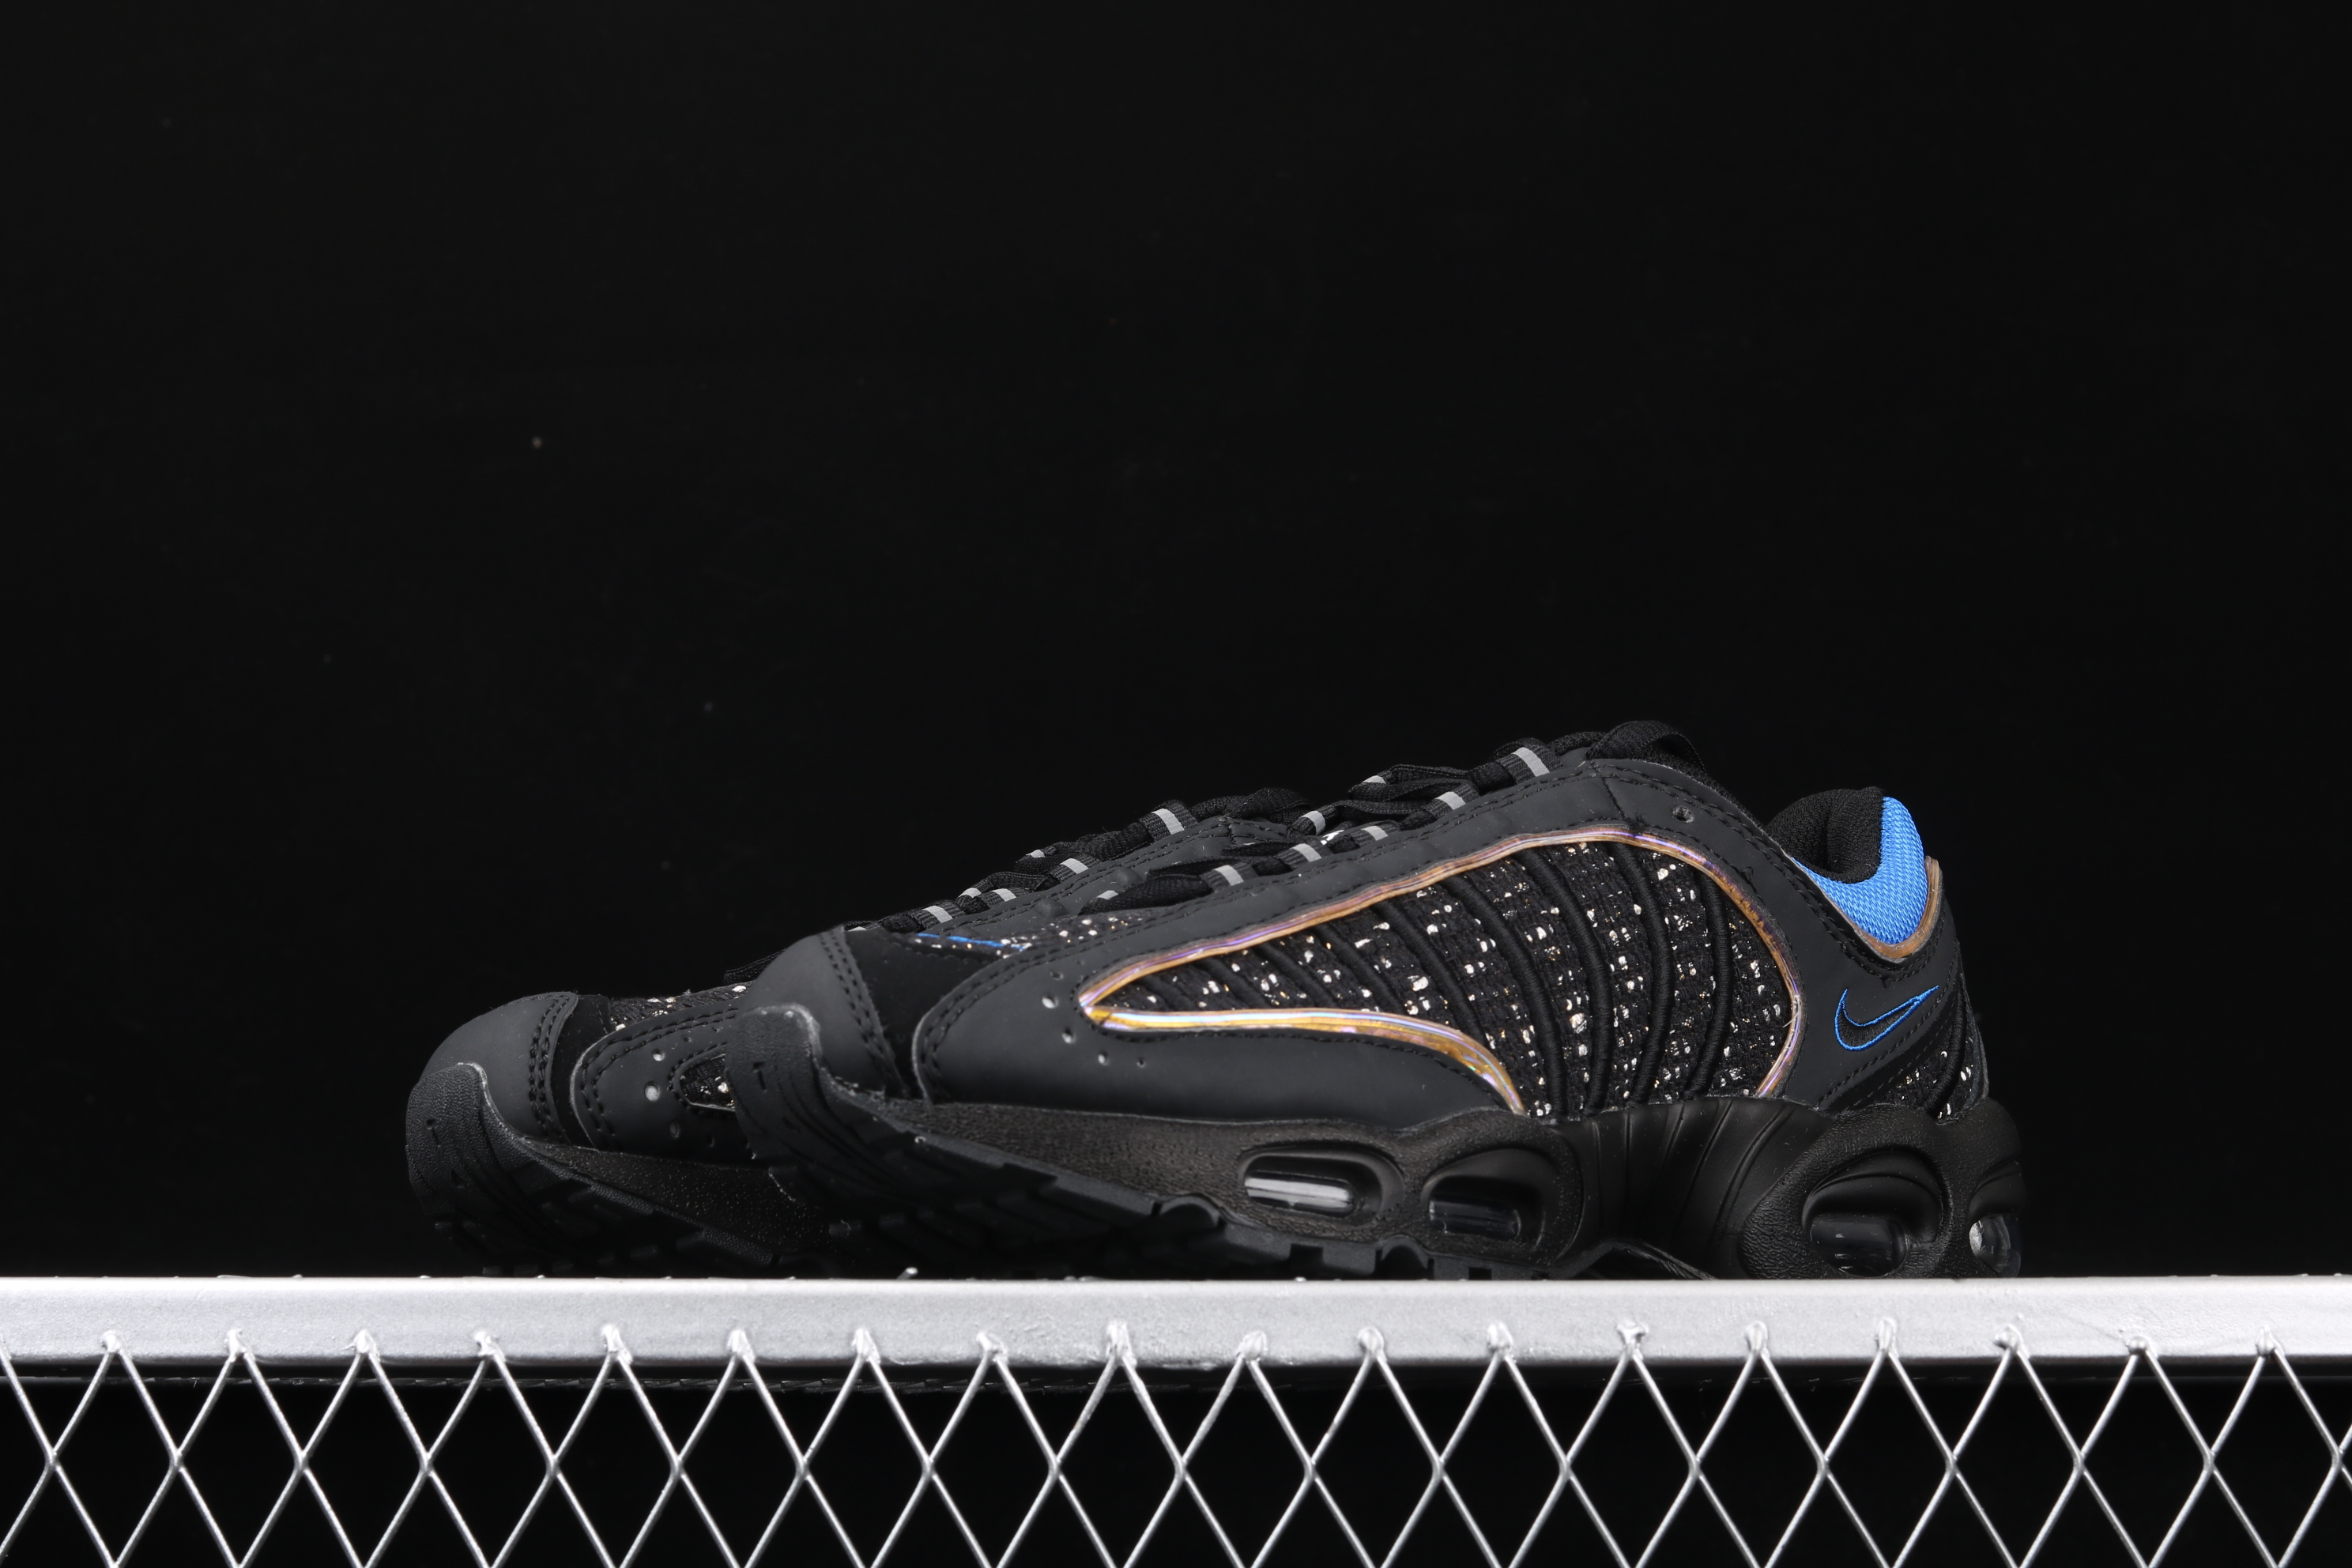 New Men Nike Air Max PLUS TXT Black Gold Running Shoes